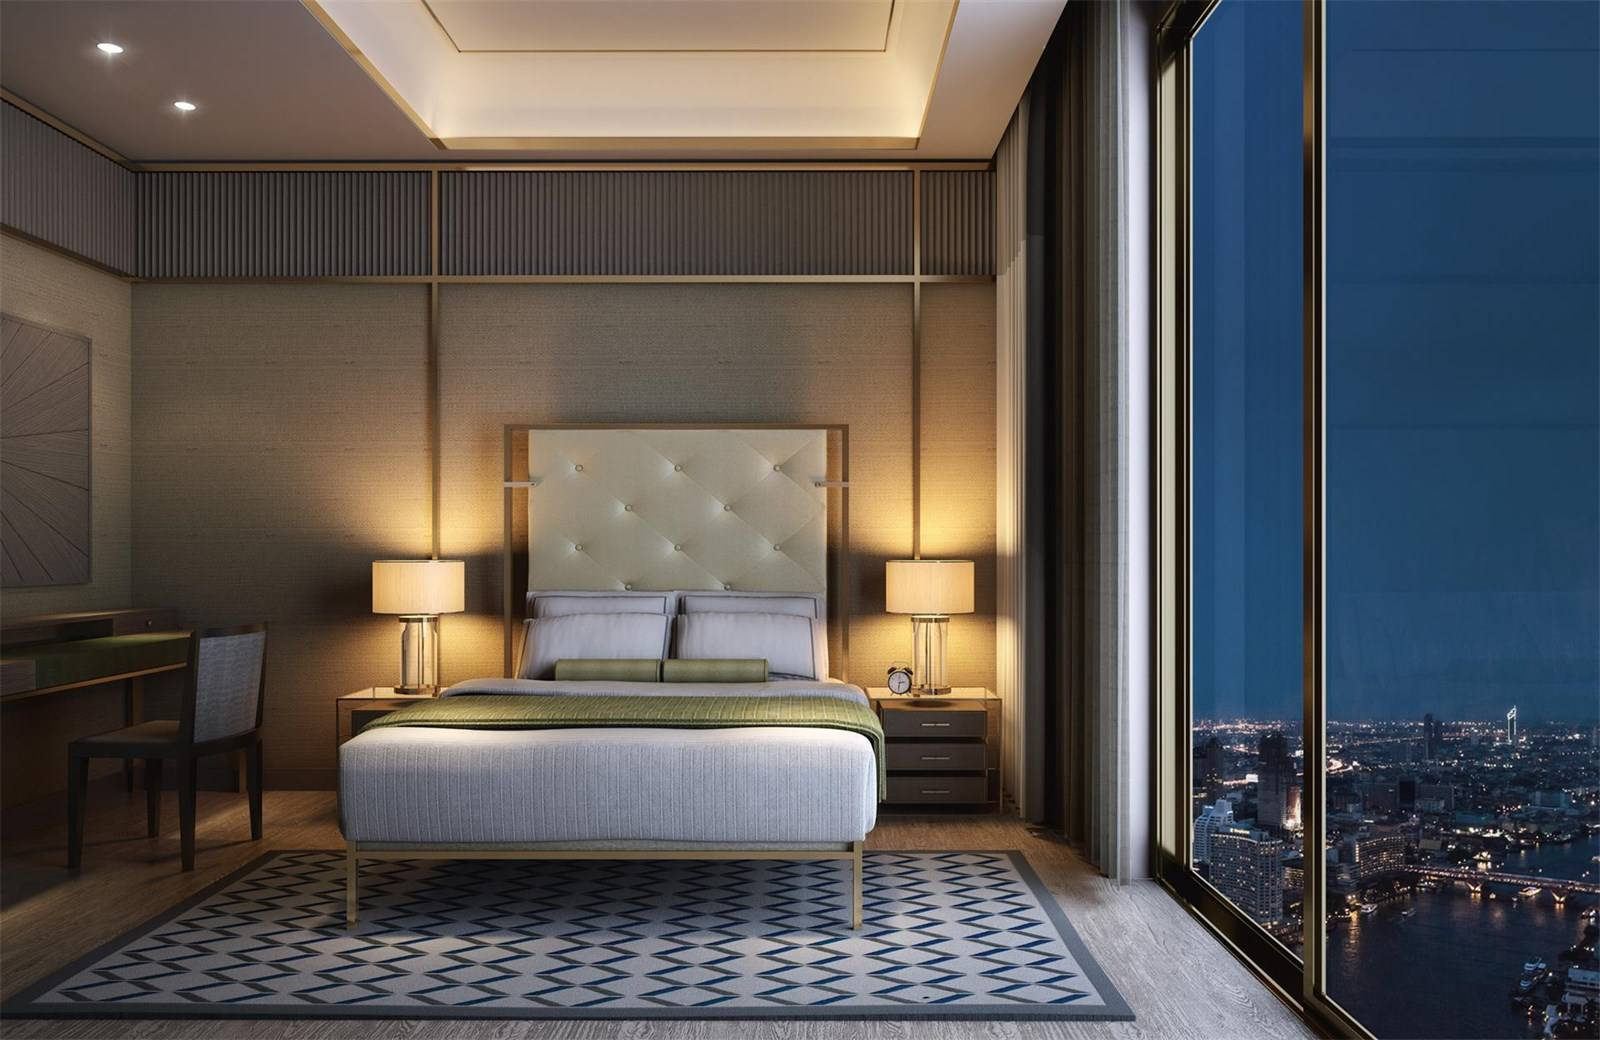 Situated on the Chao Phraya River, this urban retreat at The Residences at Mandarin Oriental, Bangkok, has unparalleled views of the Thai capital.